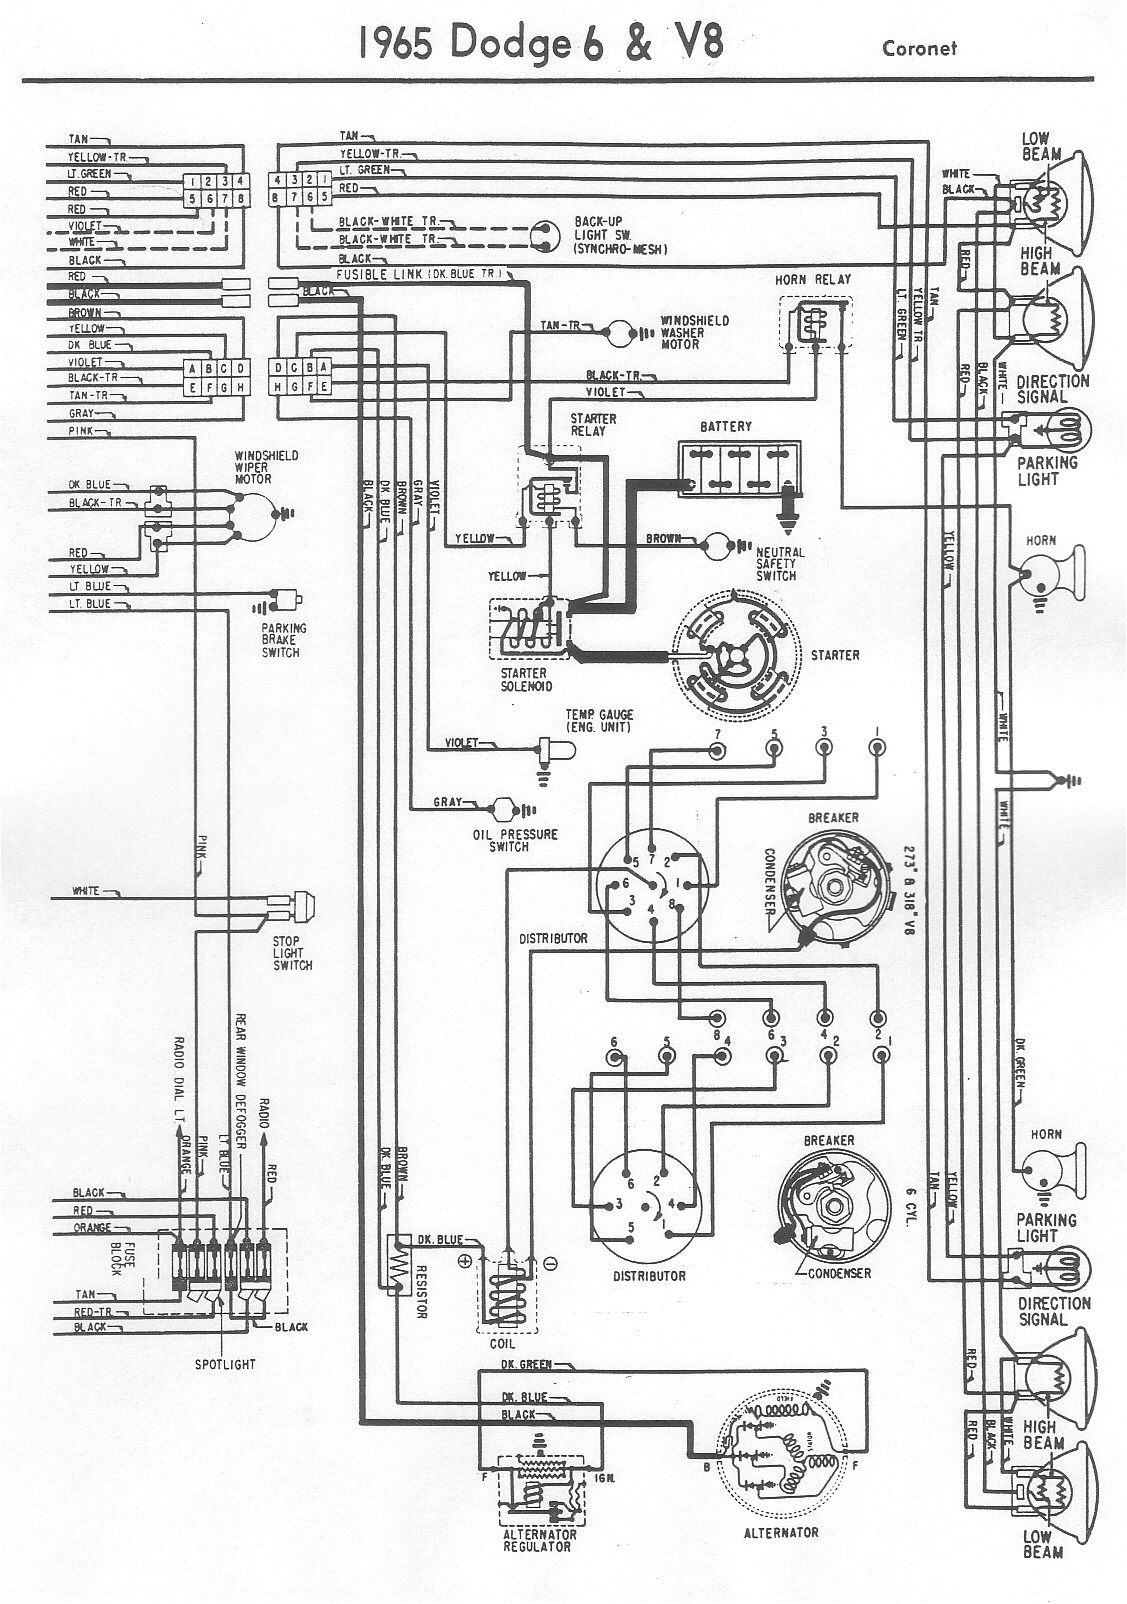 electrical diagrams for chrysler dodge and plymouth carschrysler plymouth dodge electrical diagrams